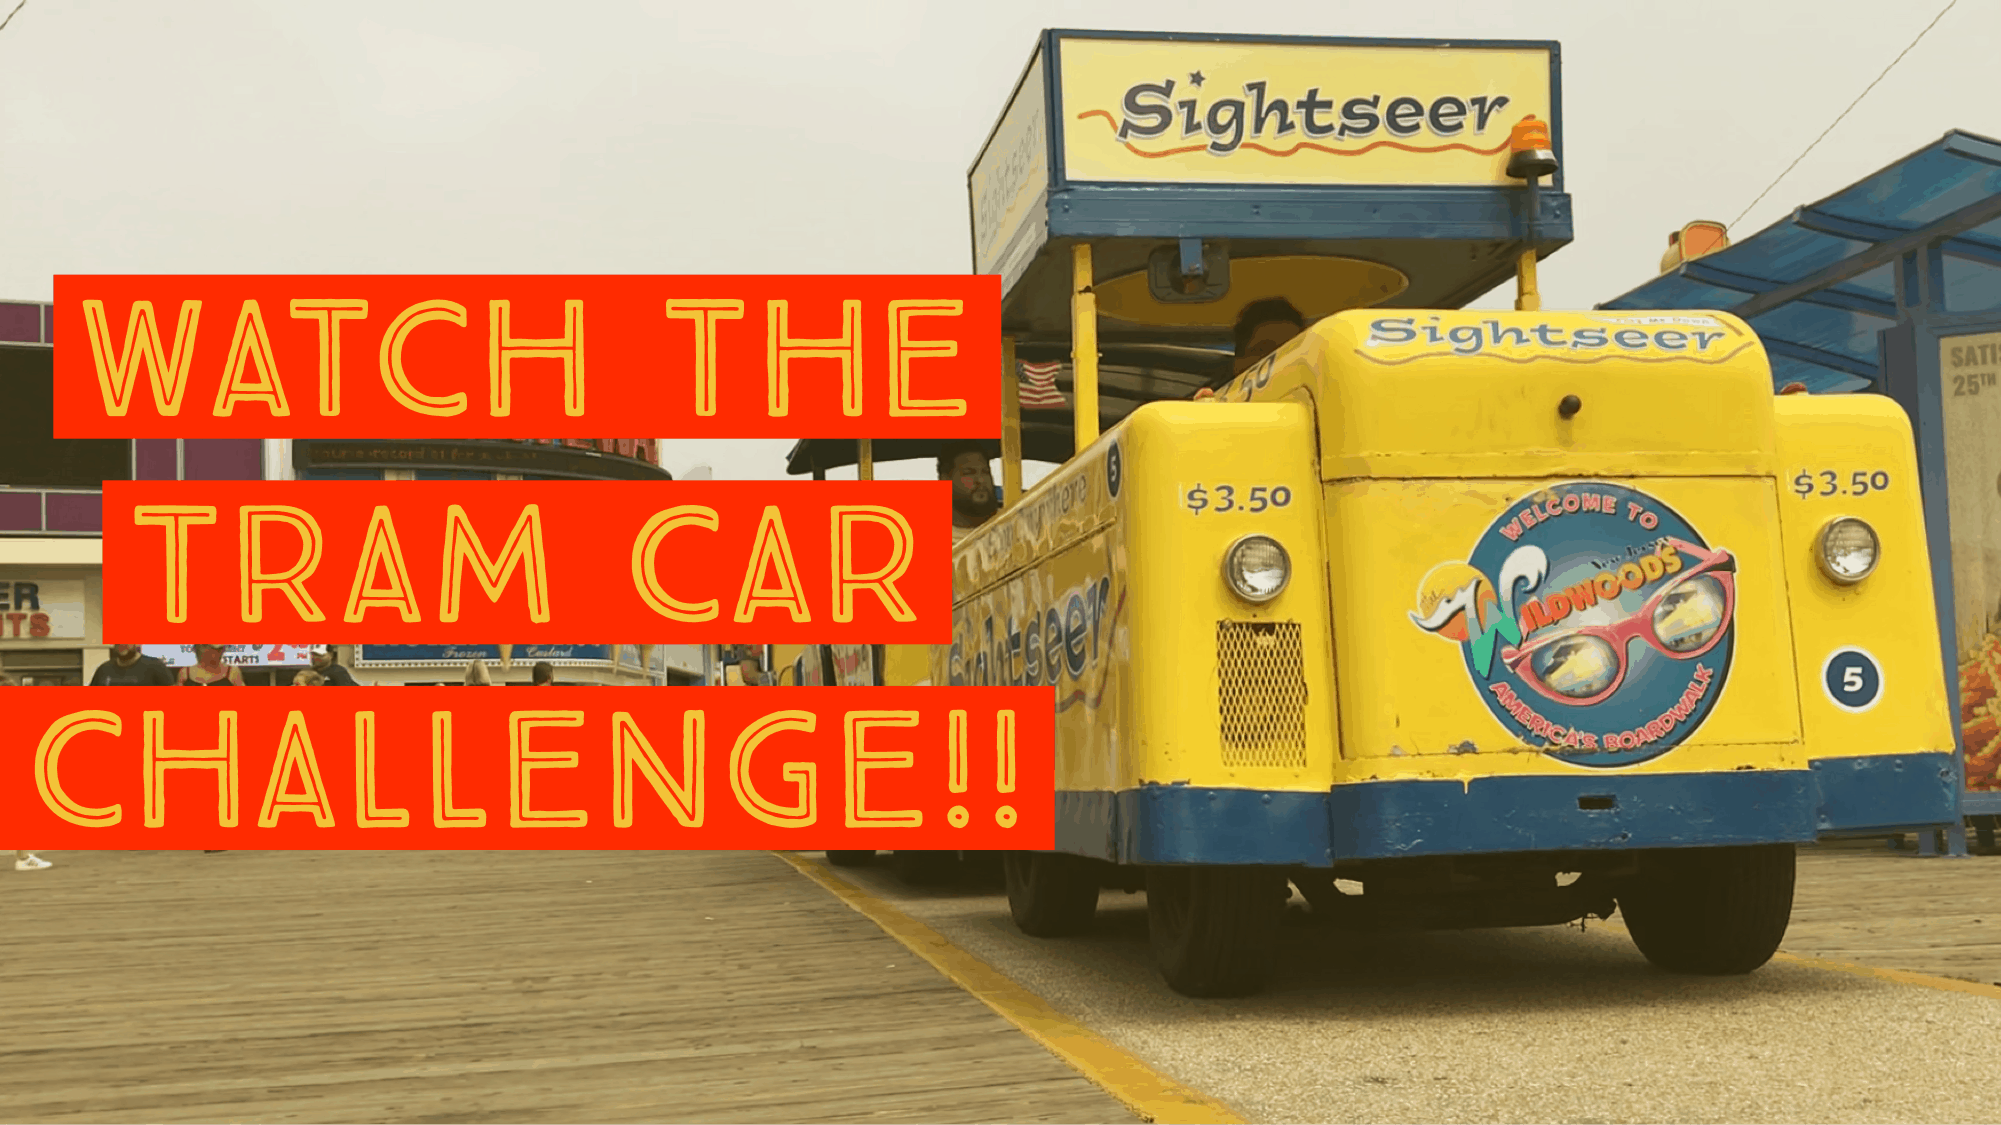 Watch The Tram Car Please Challenge!